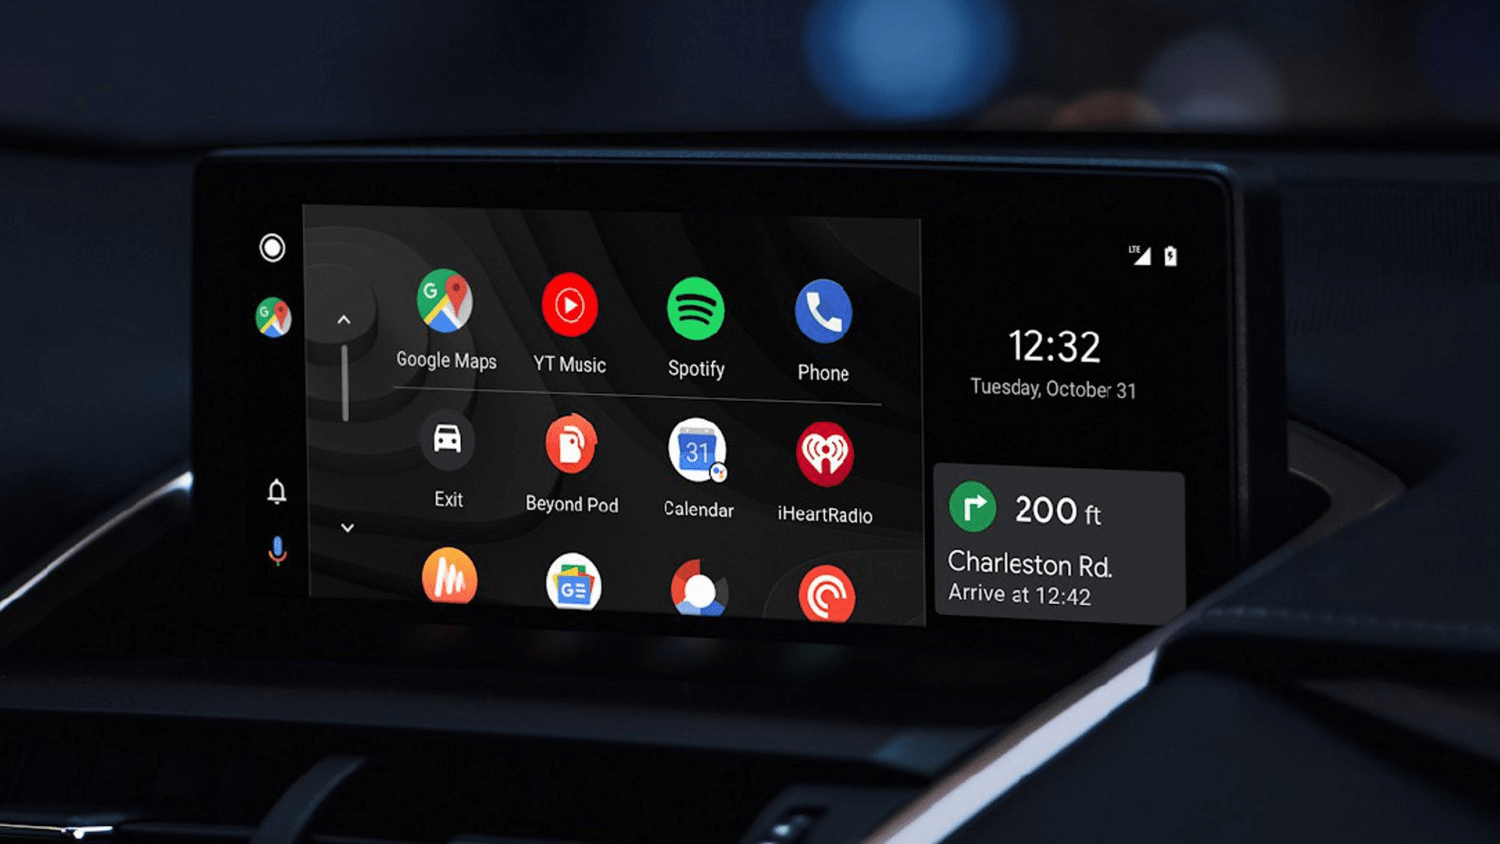 What Is Android Auto, and Should You Use It Instead of a Regular Phone in Your Car?